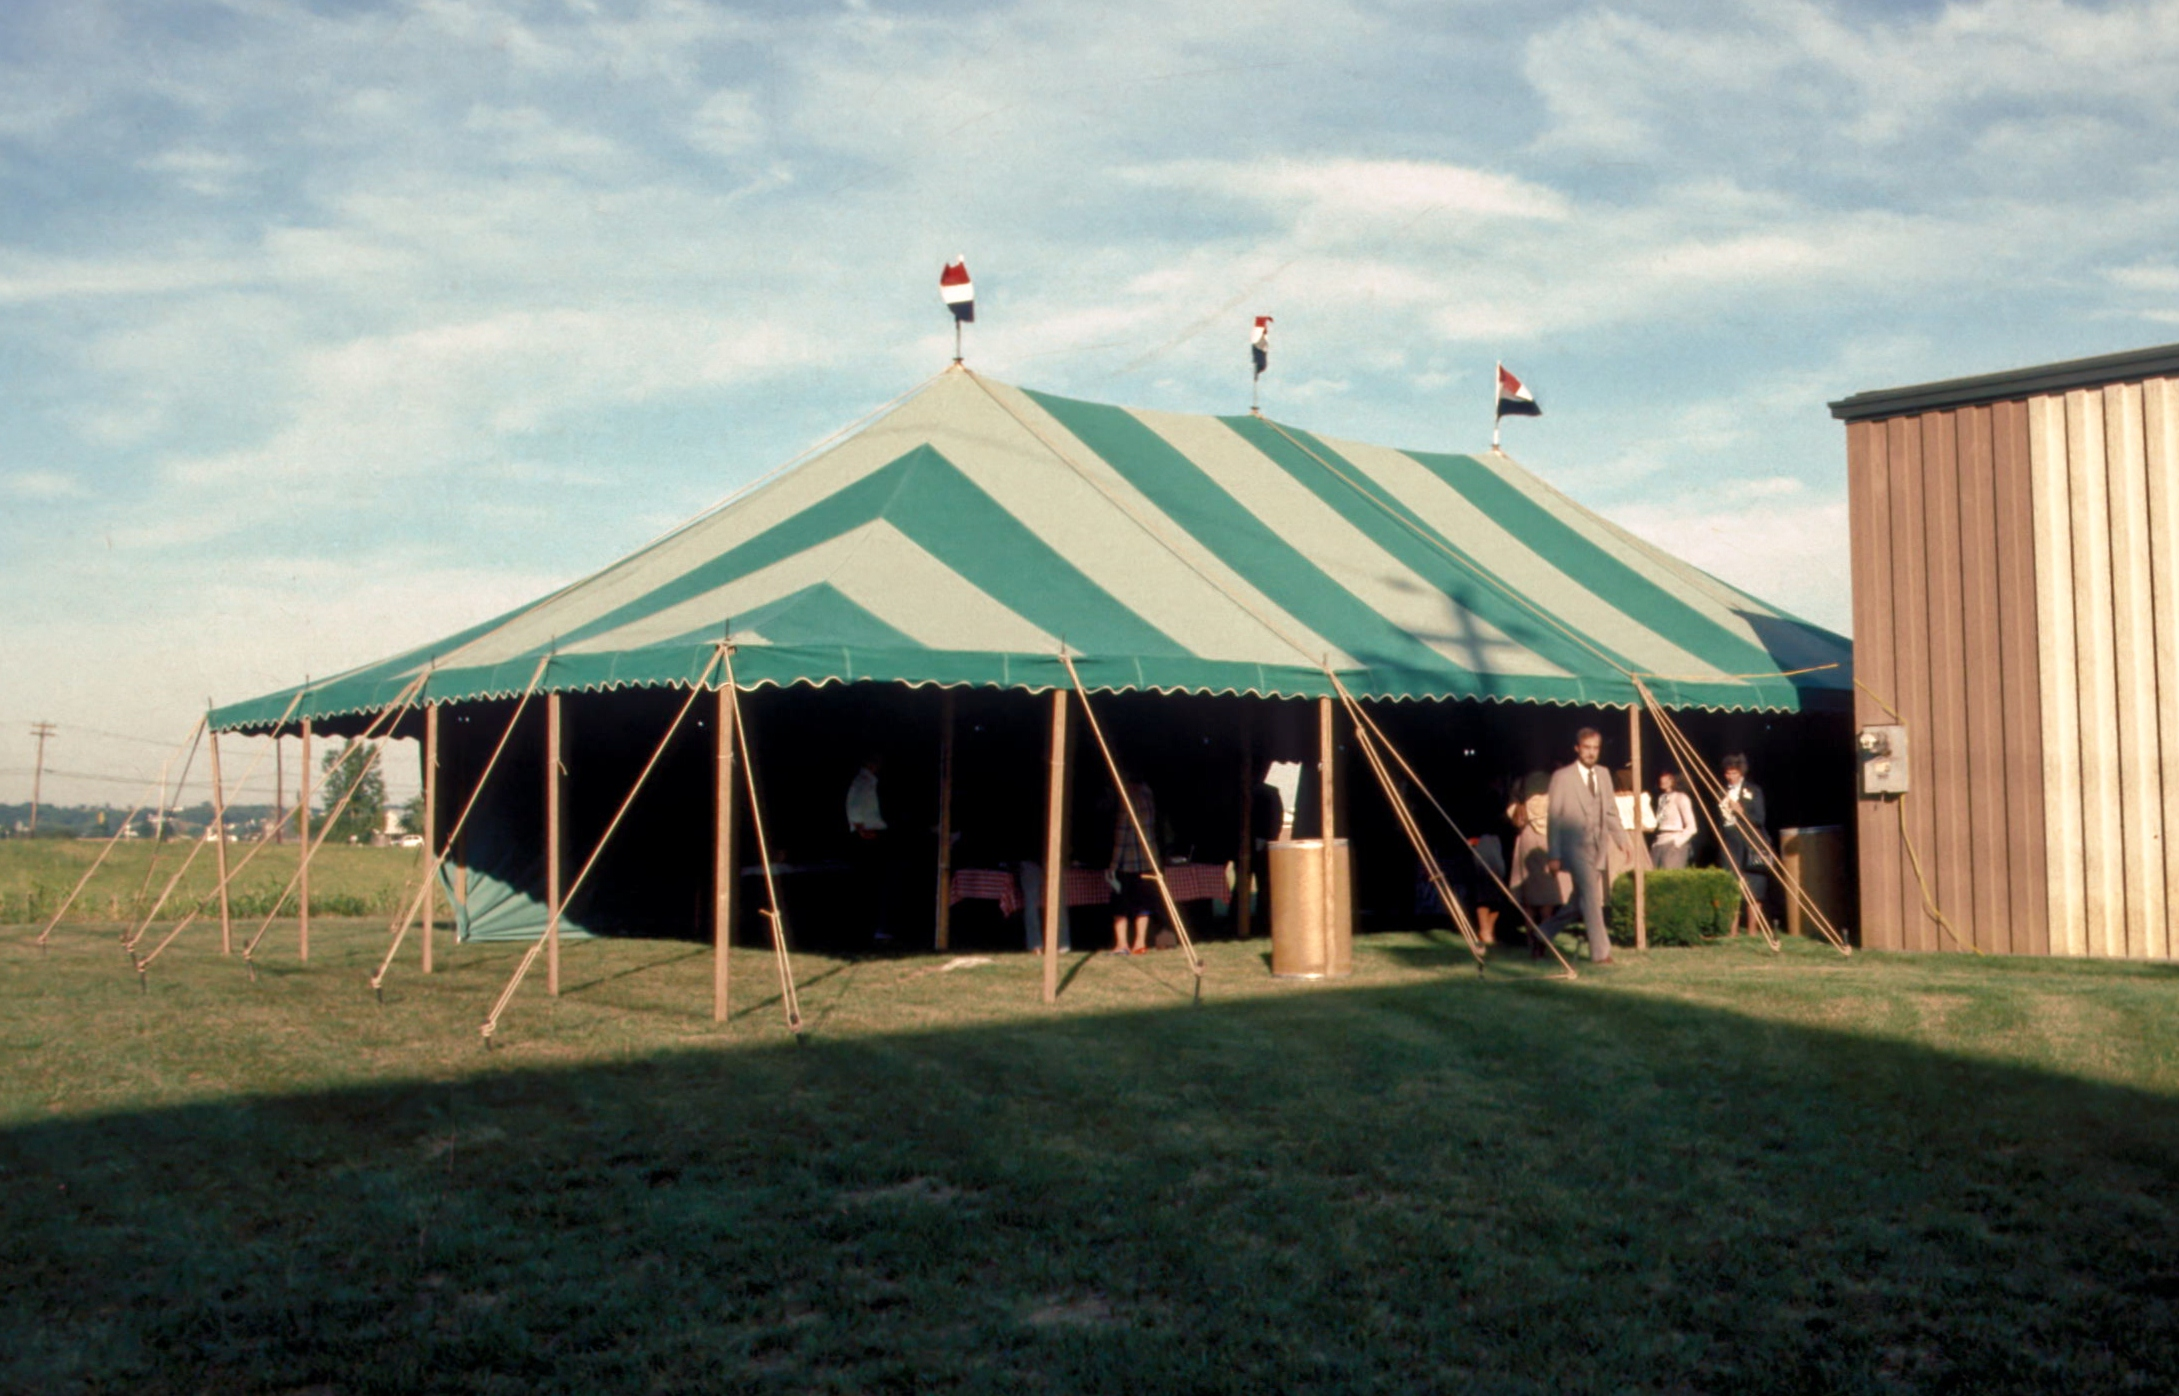 In the early days, we bought tents that were gray and green striped because they didn't show the dirt as quickly.